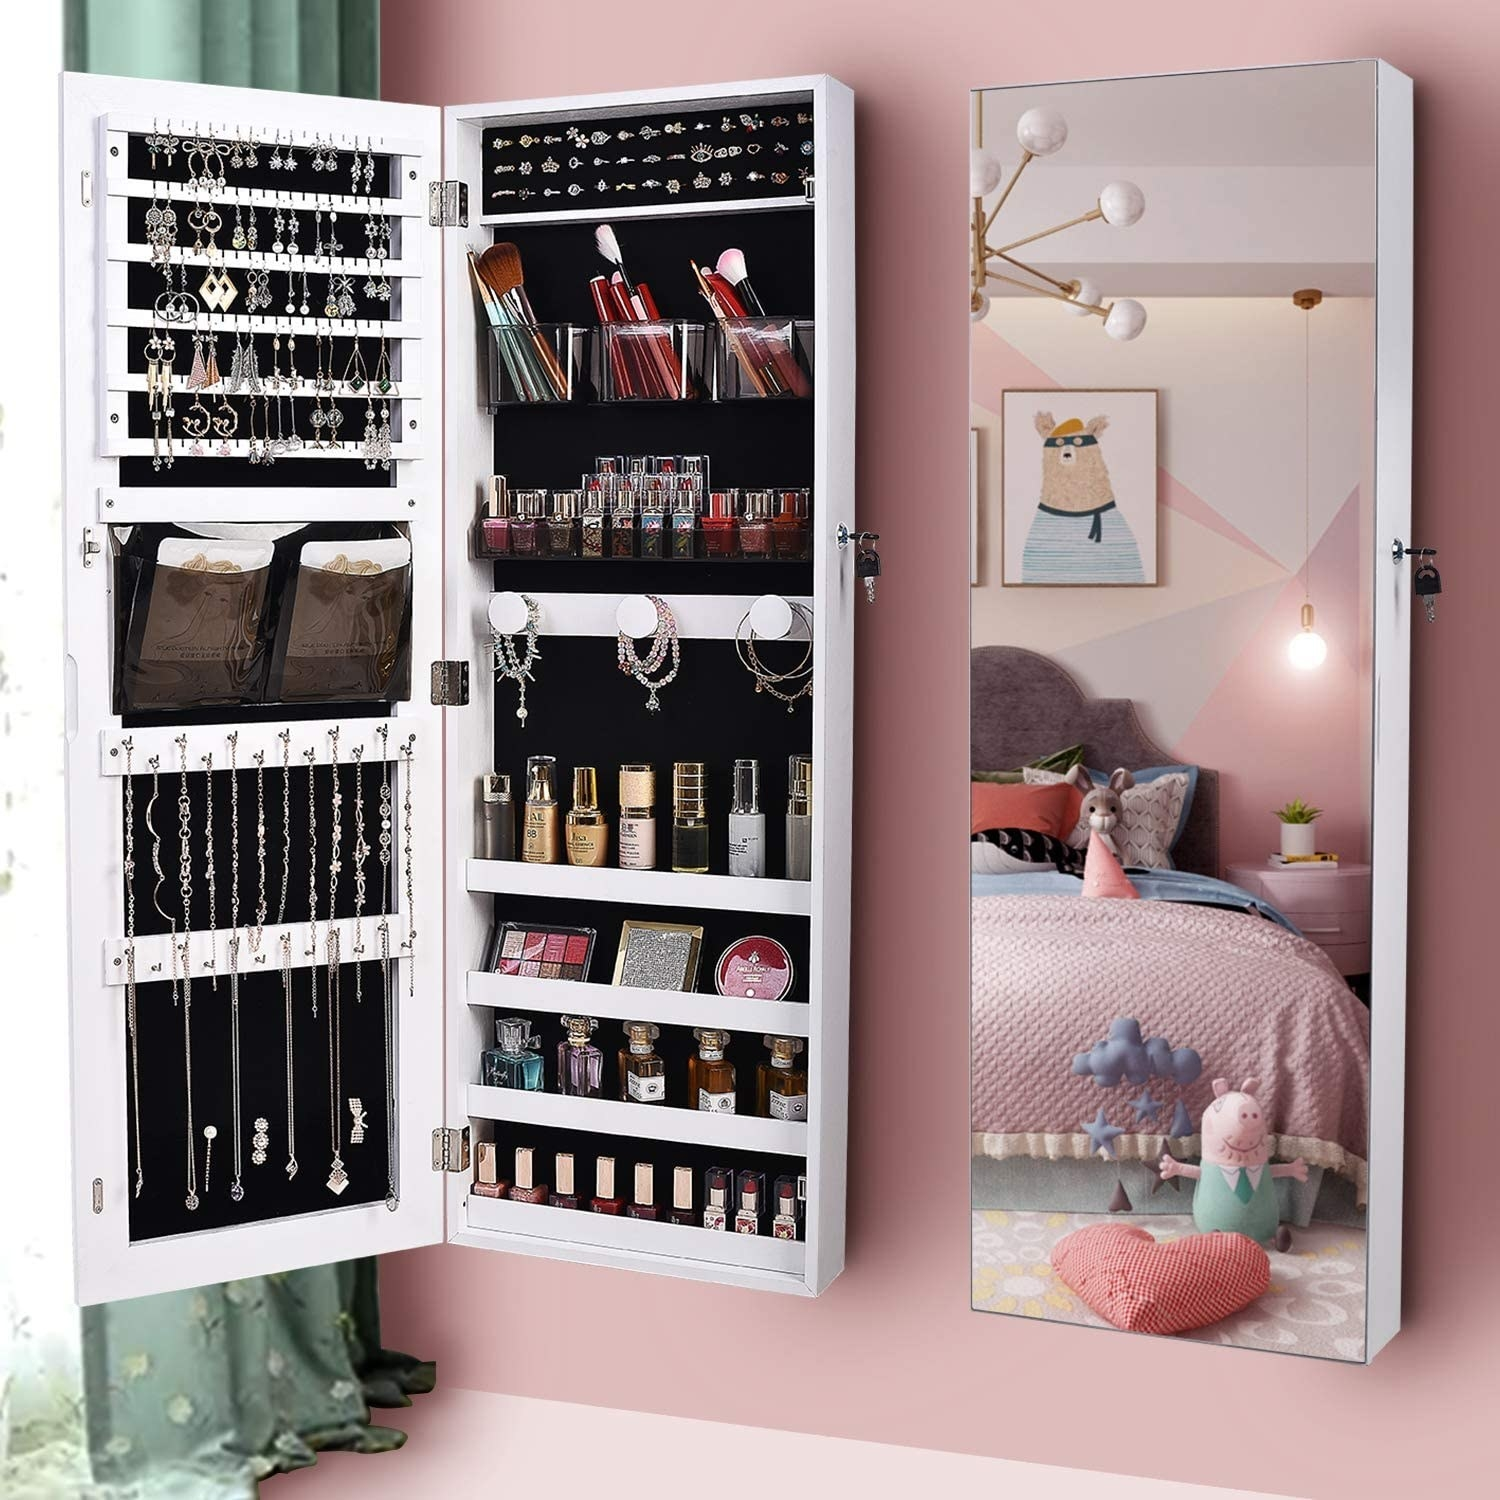 The LVSOMT organizer mirror in a bedroom